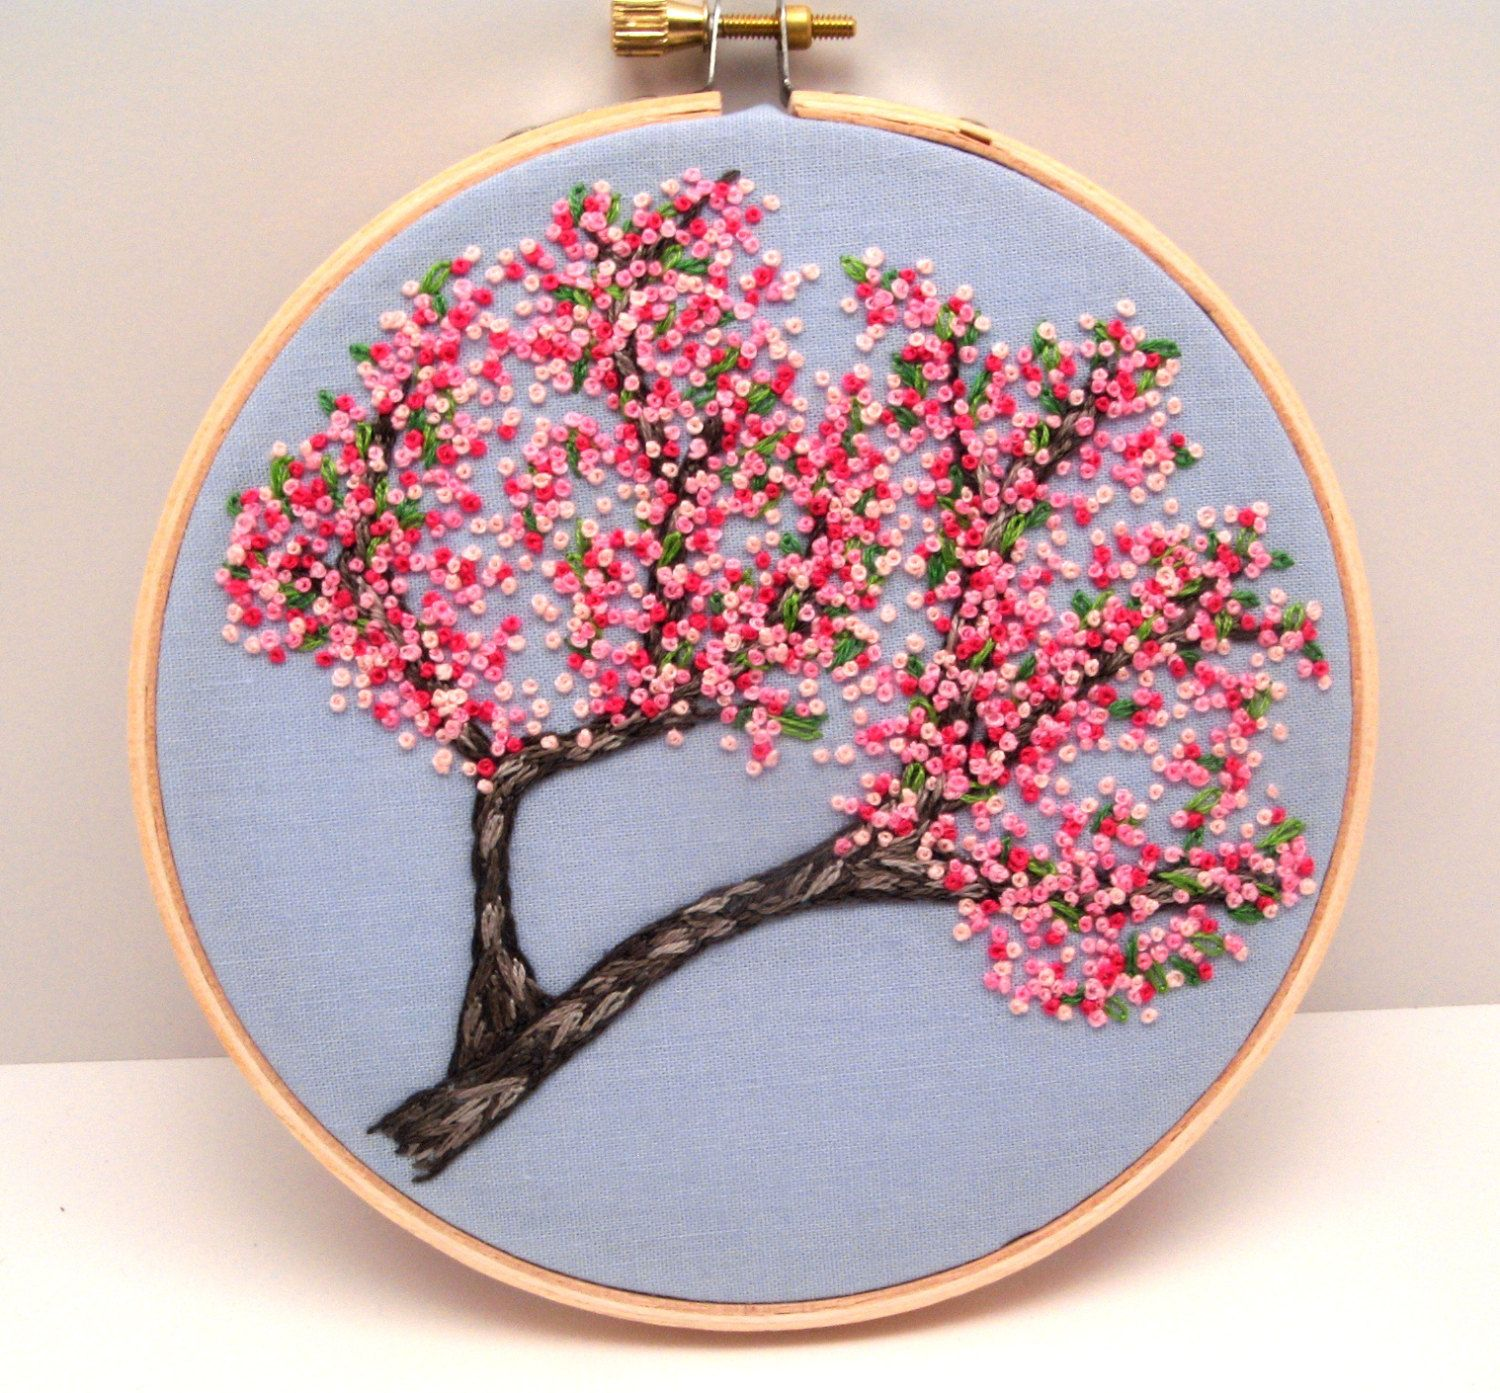 Cherry blossoms hand embroidery hand stitched embroidery hoop art cherry blossoms hand embroidery hand stitched embroidery hoop art pink spring flowers 5000 ccuart Choice Image